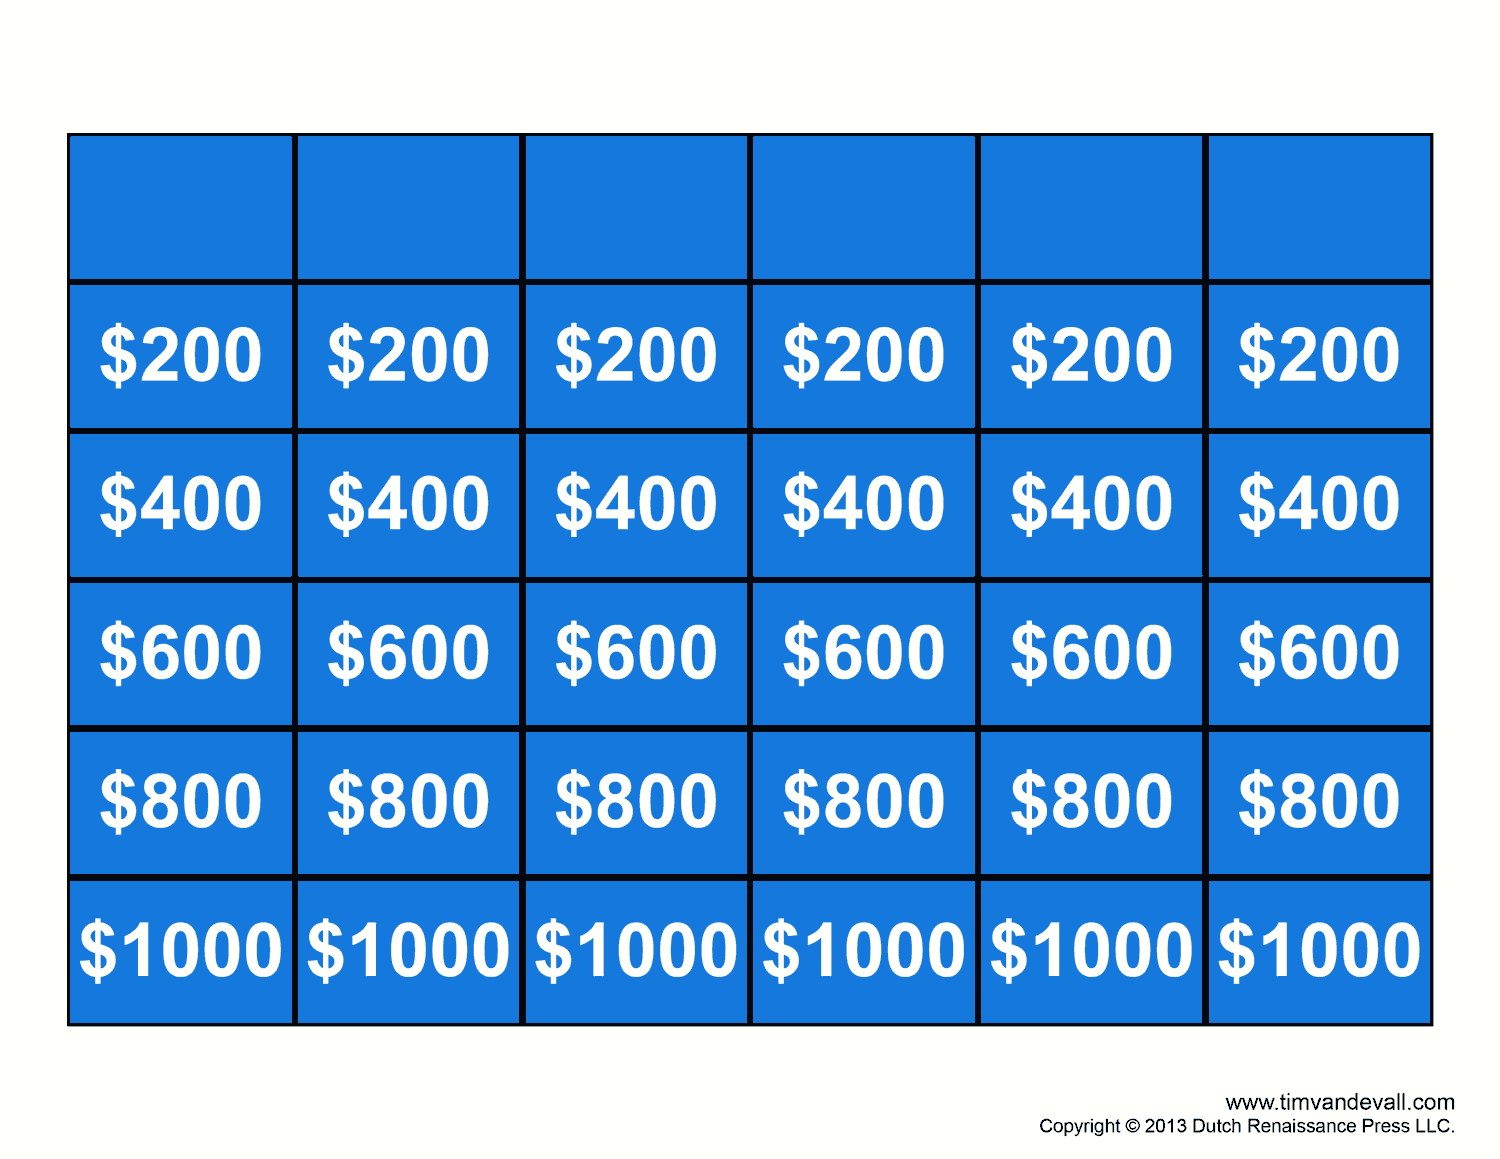 Free jeopardy template make your own jeopardy game jeopardy template pronofoot35fo Image collections